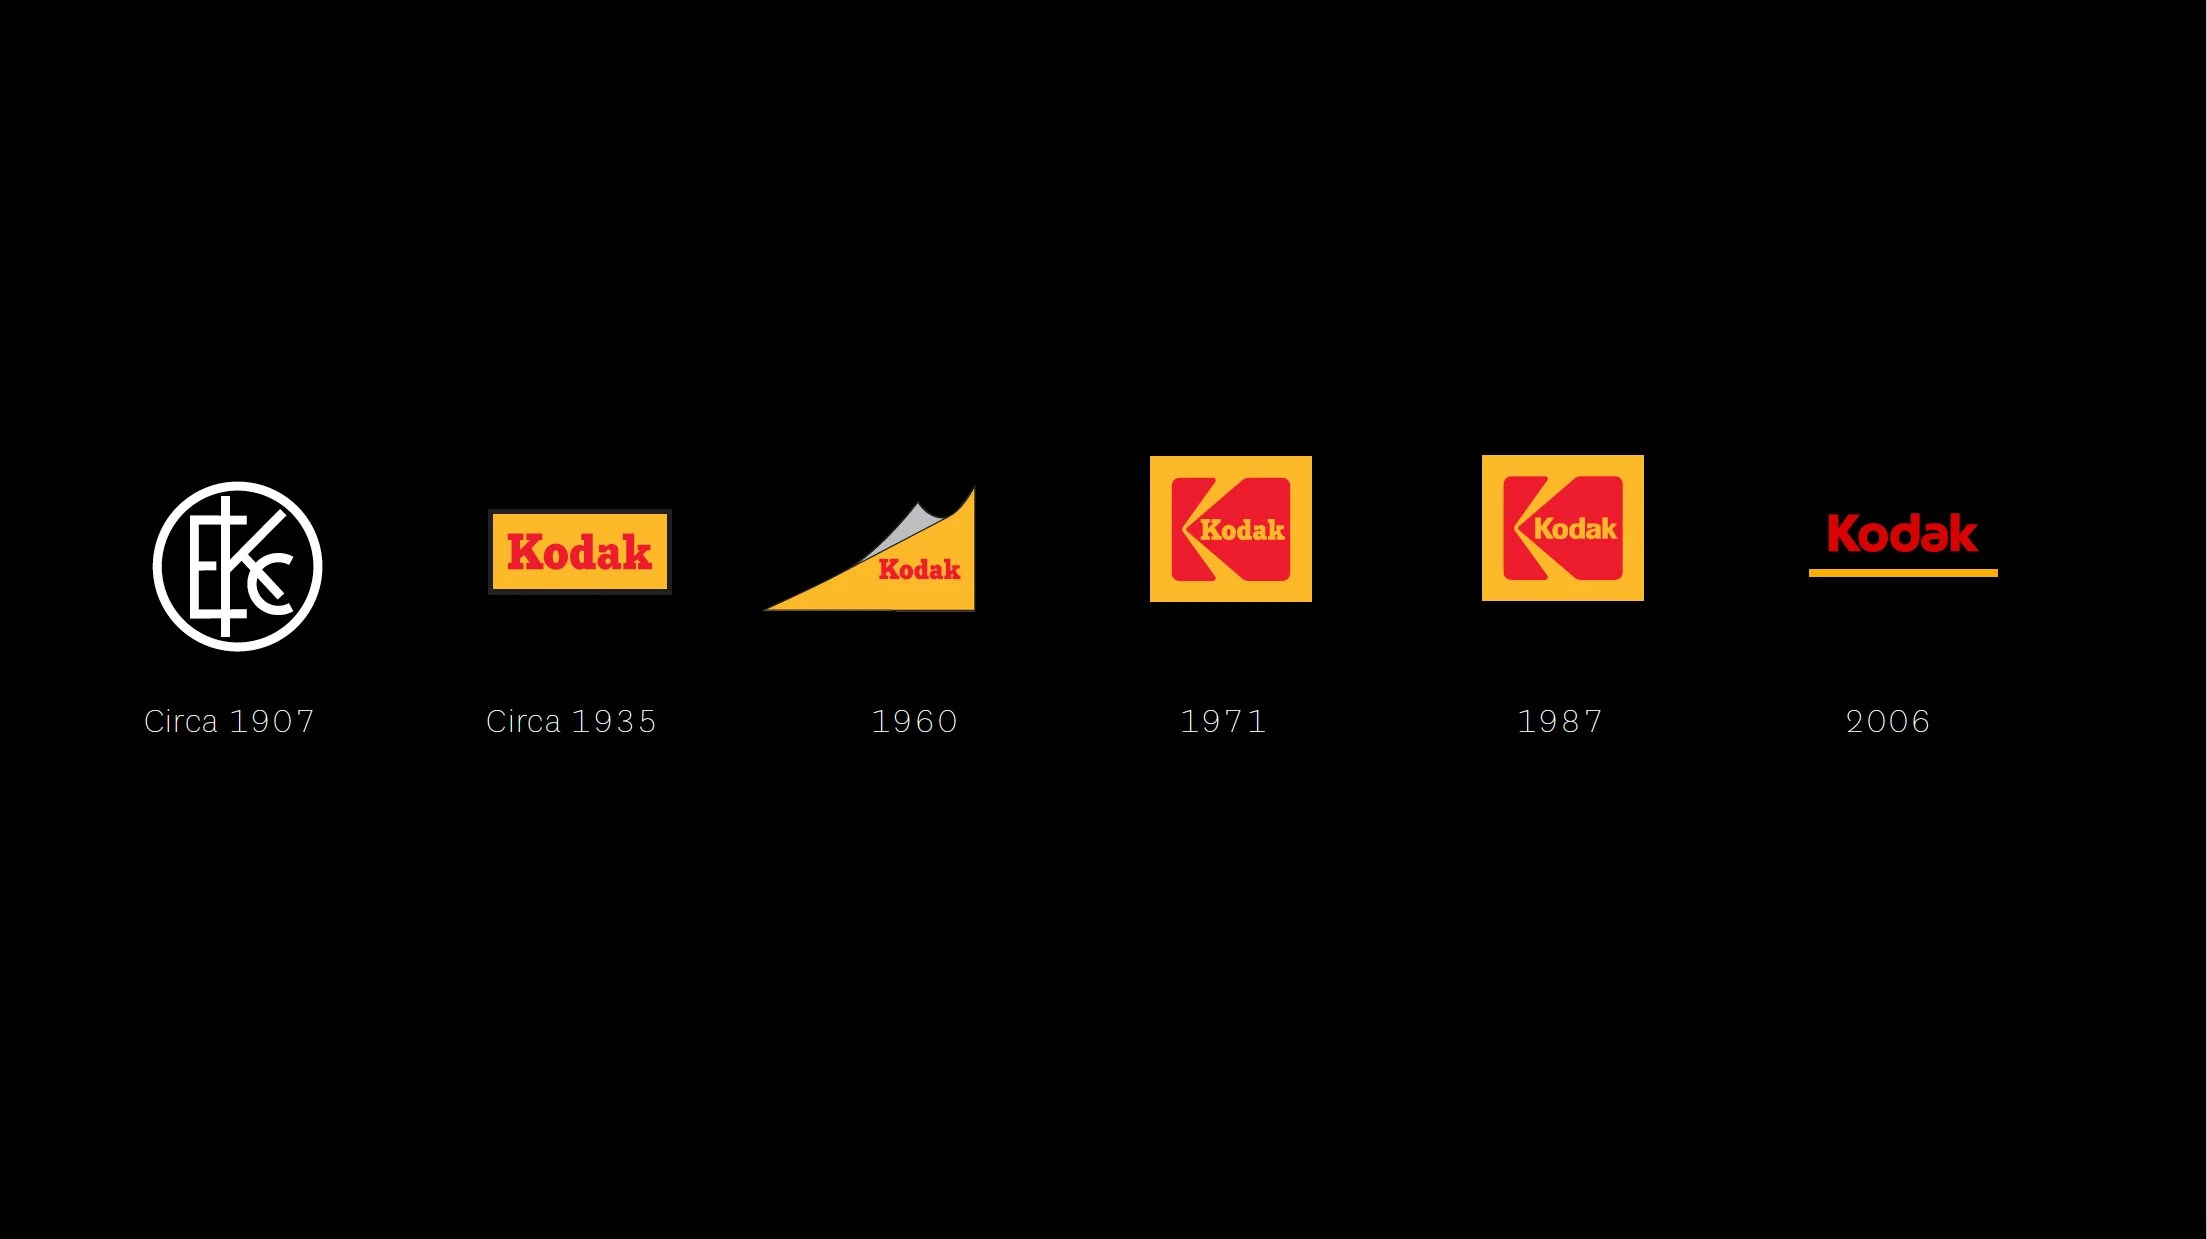 Kodak Logos from 1907 to 2006